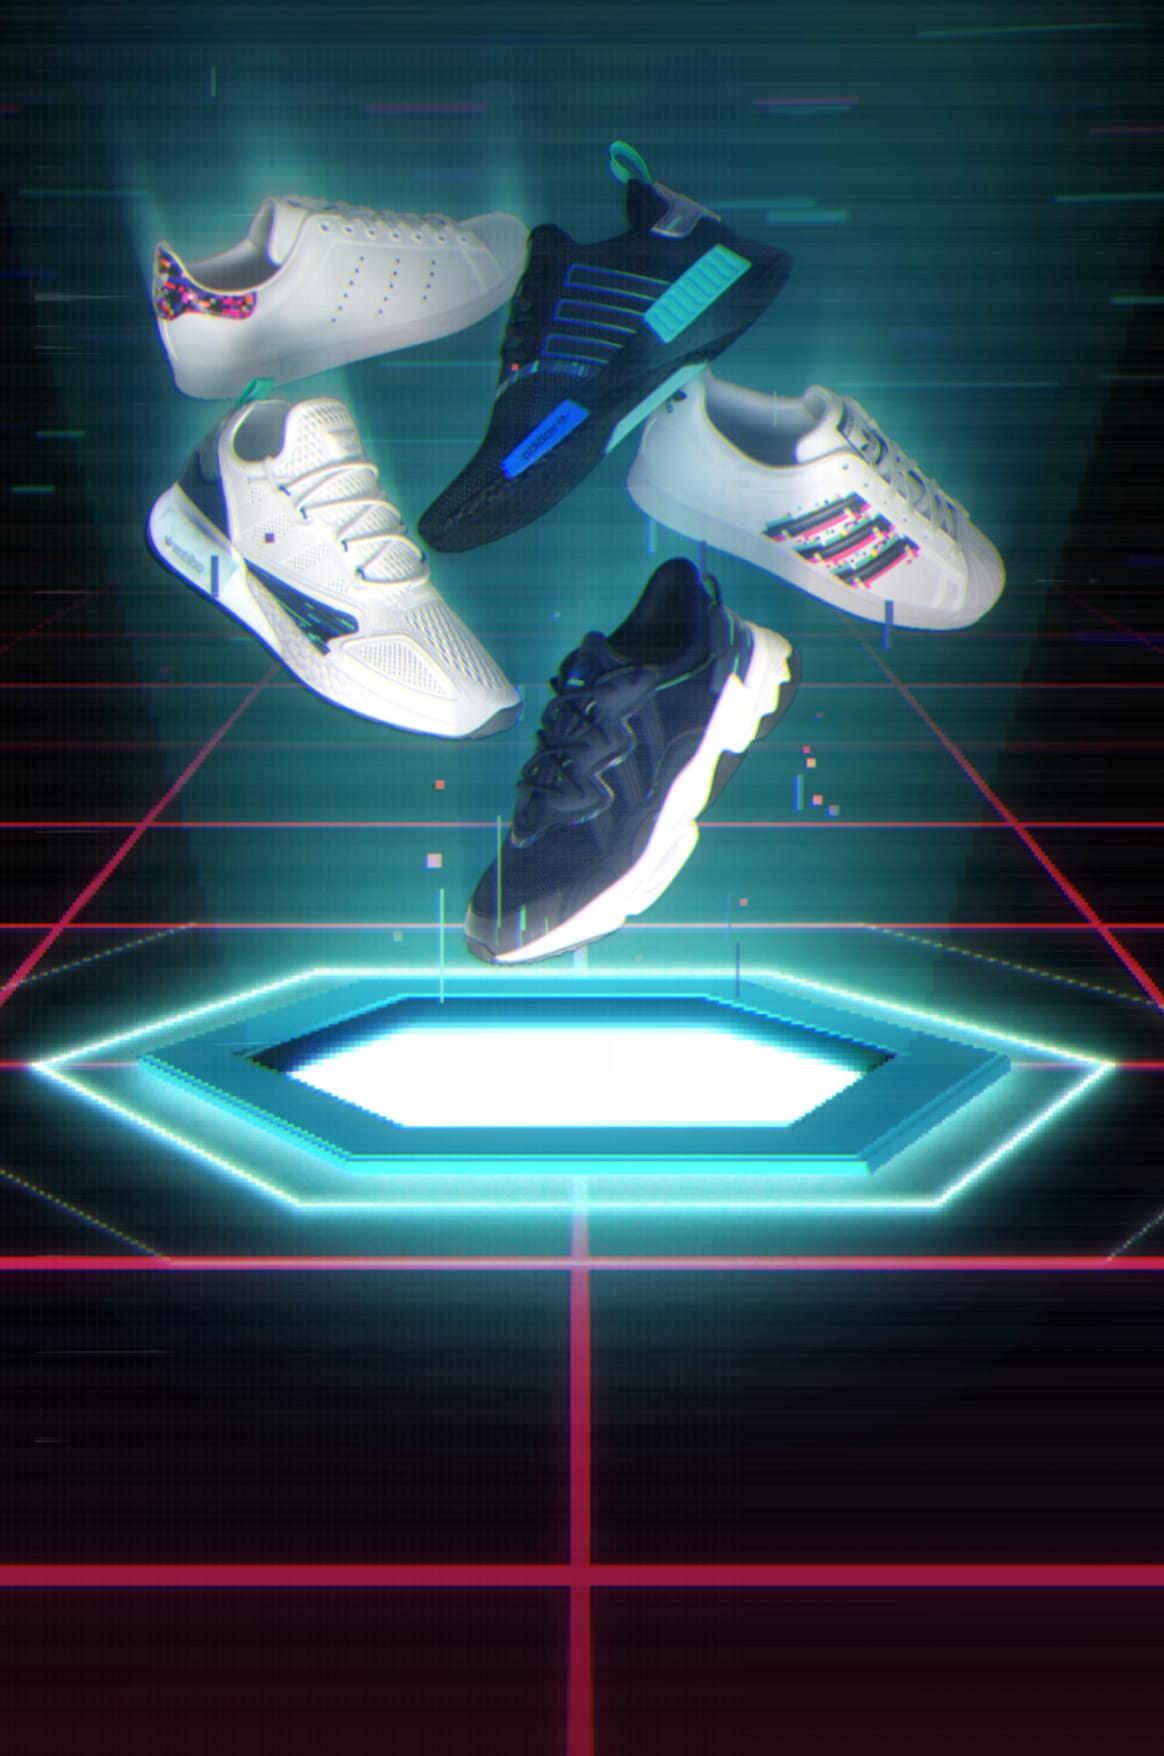 adidas NMD_R1, Ozweego, ZX 2K Boost, Stan Smith, and Superstar in video-game setting.